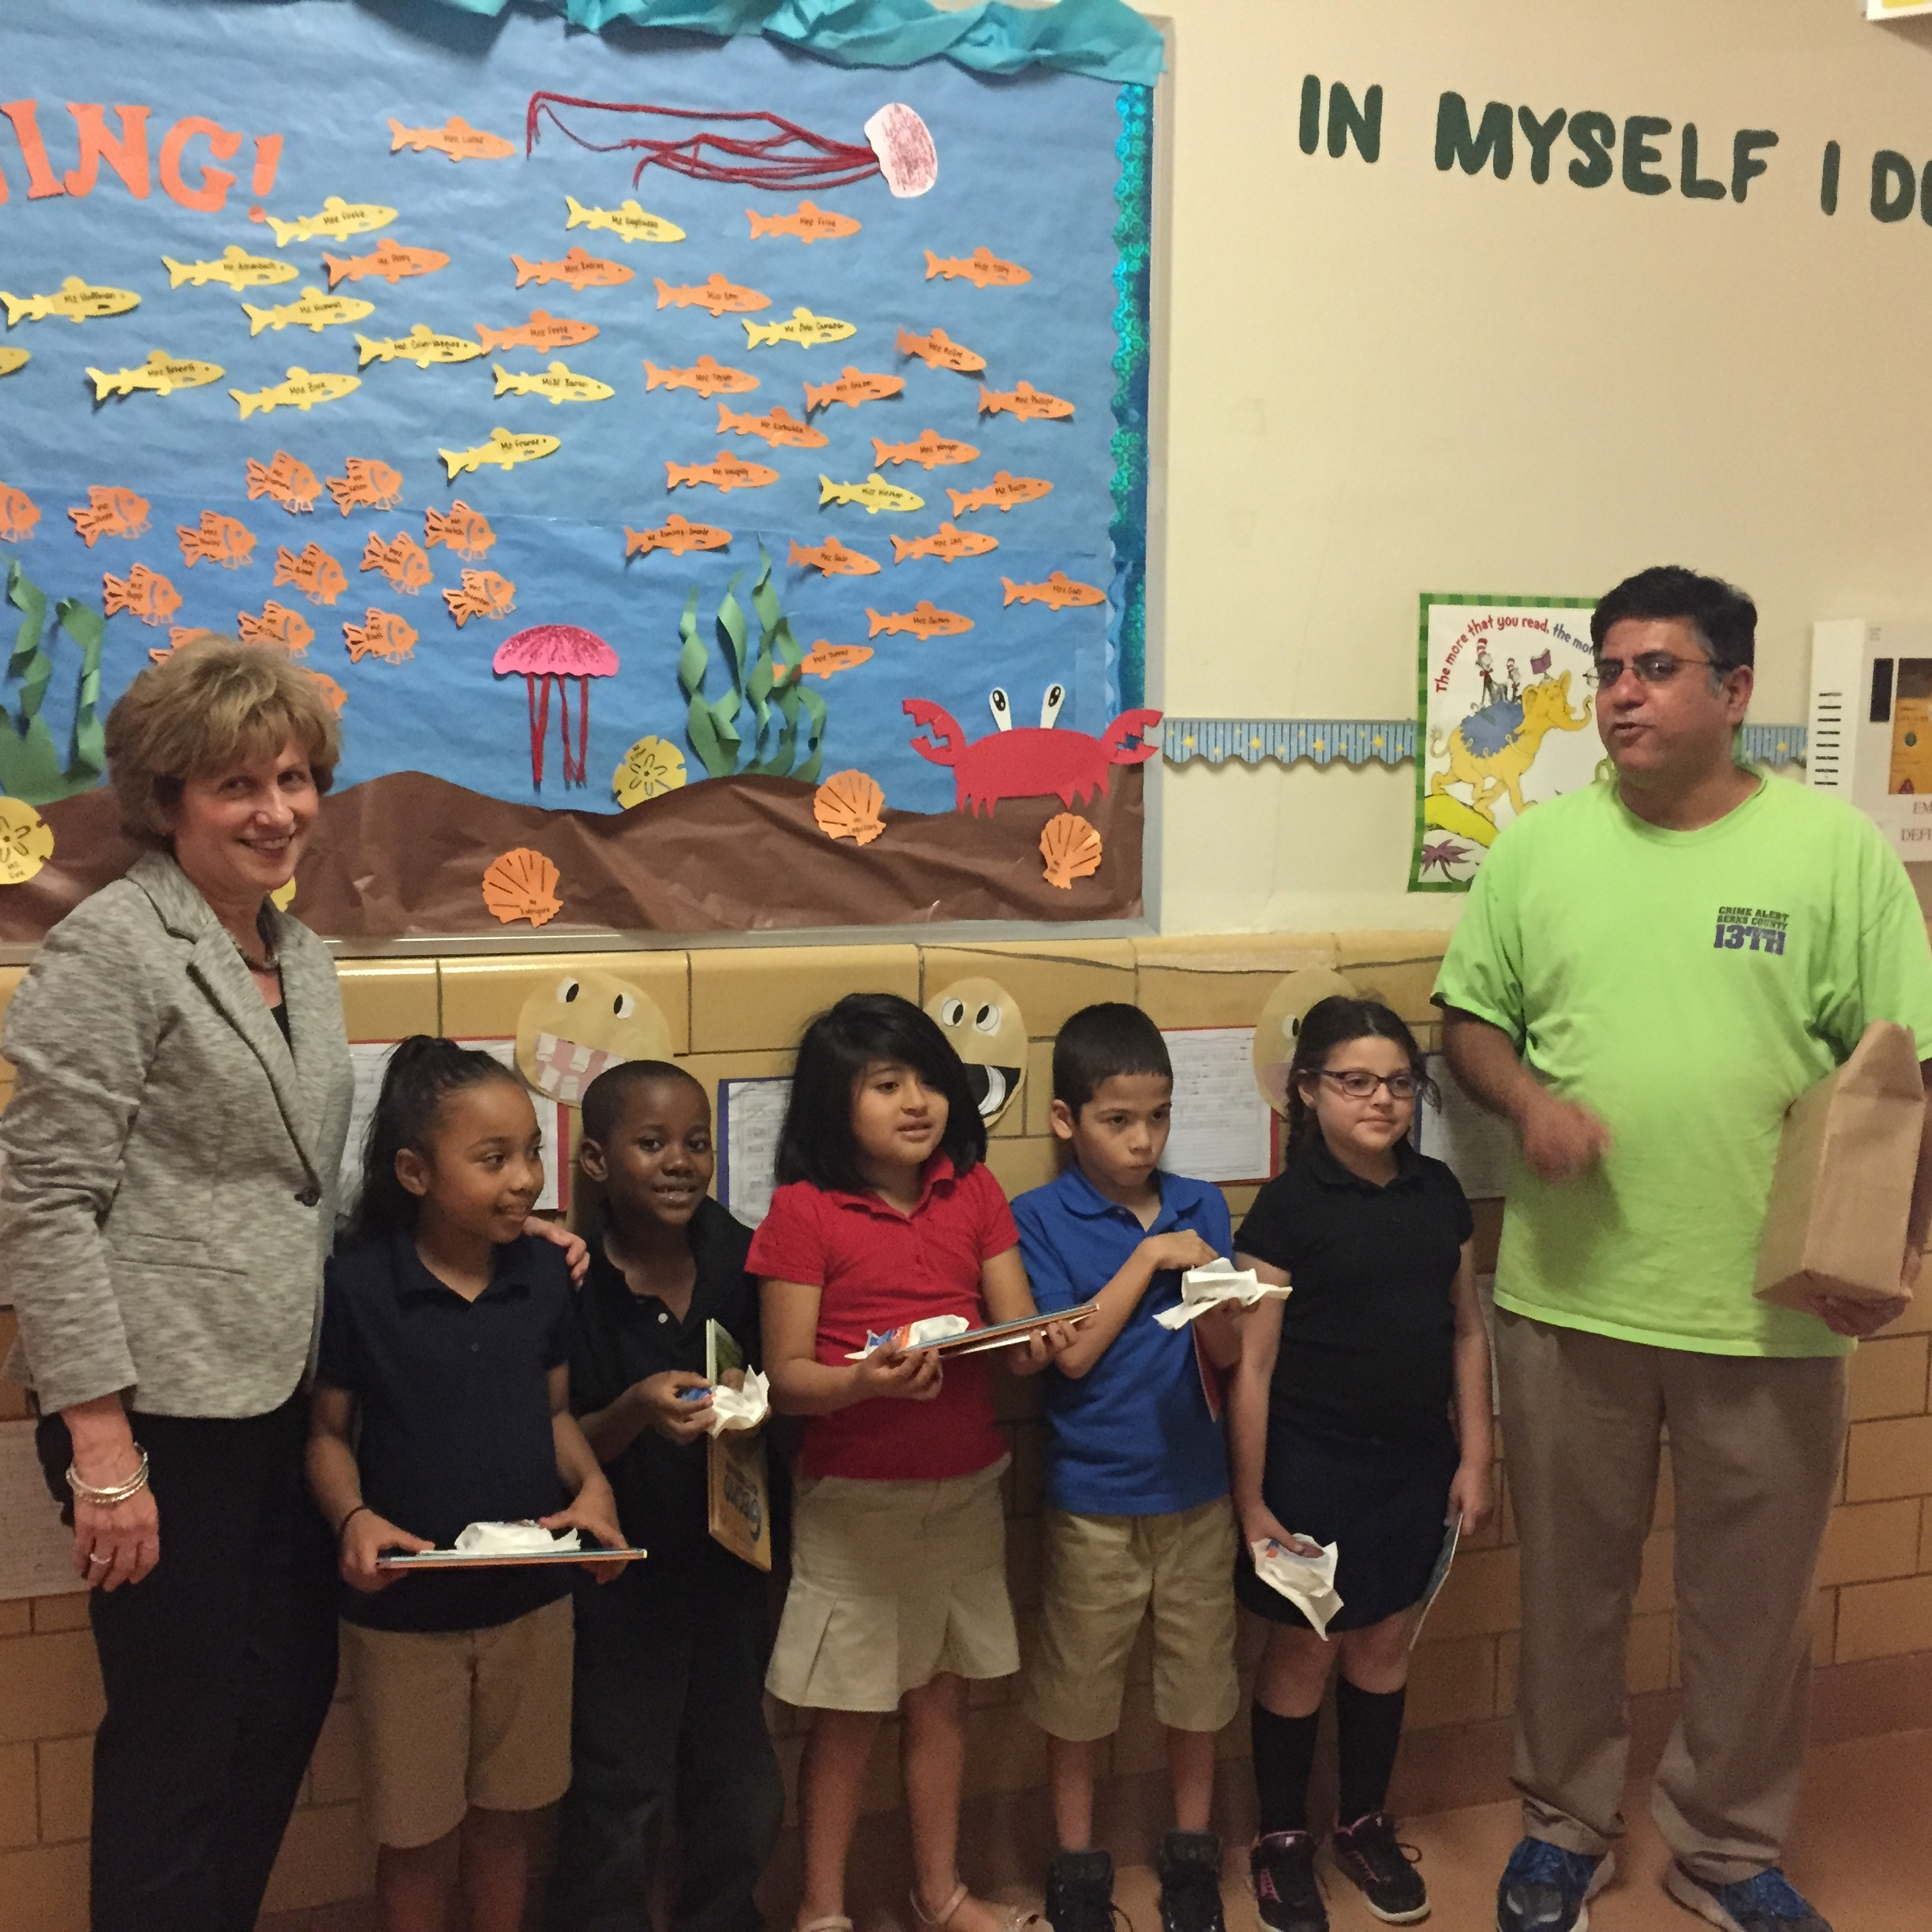 May 29, 2015:Senator Schwank and Dairy Queen Owner Hamid Chaudry distributed free ice cream sandwiches and new books donated by the United Way at one of the Reading elementary schools.